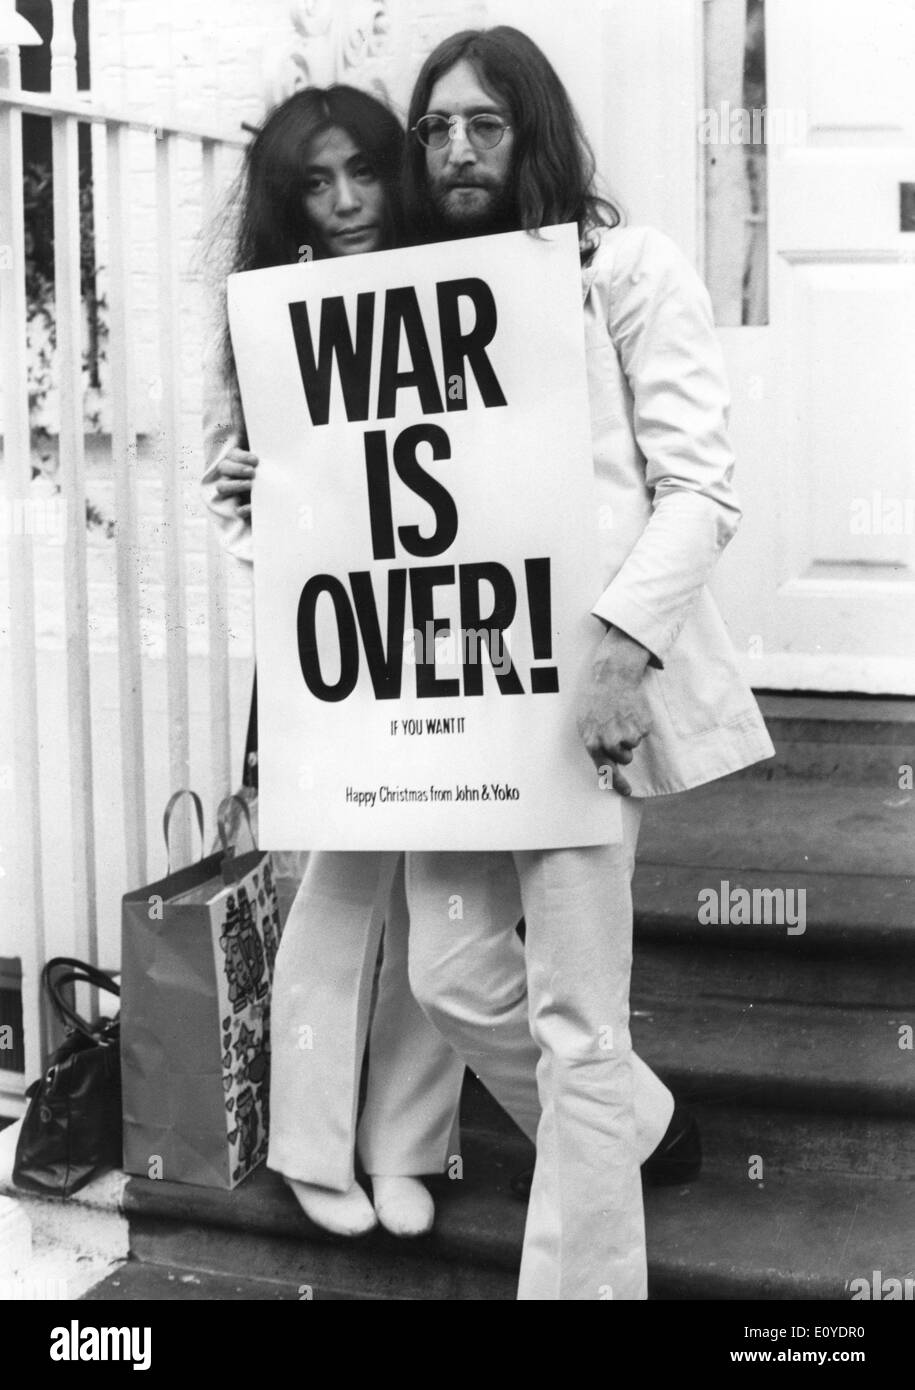 John Lennon and Yoko Ono protest Stock Photo: 69445012 - Alamy